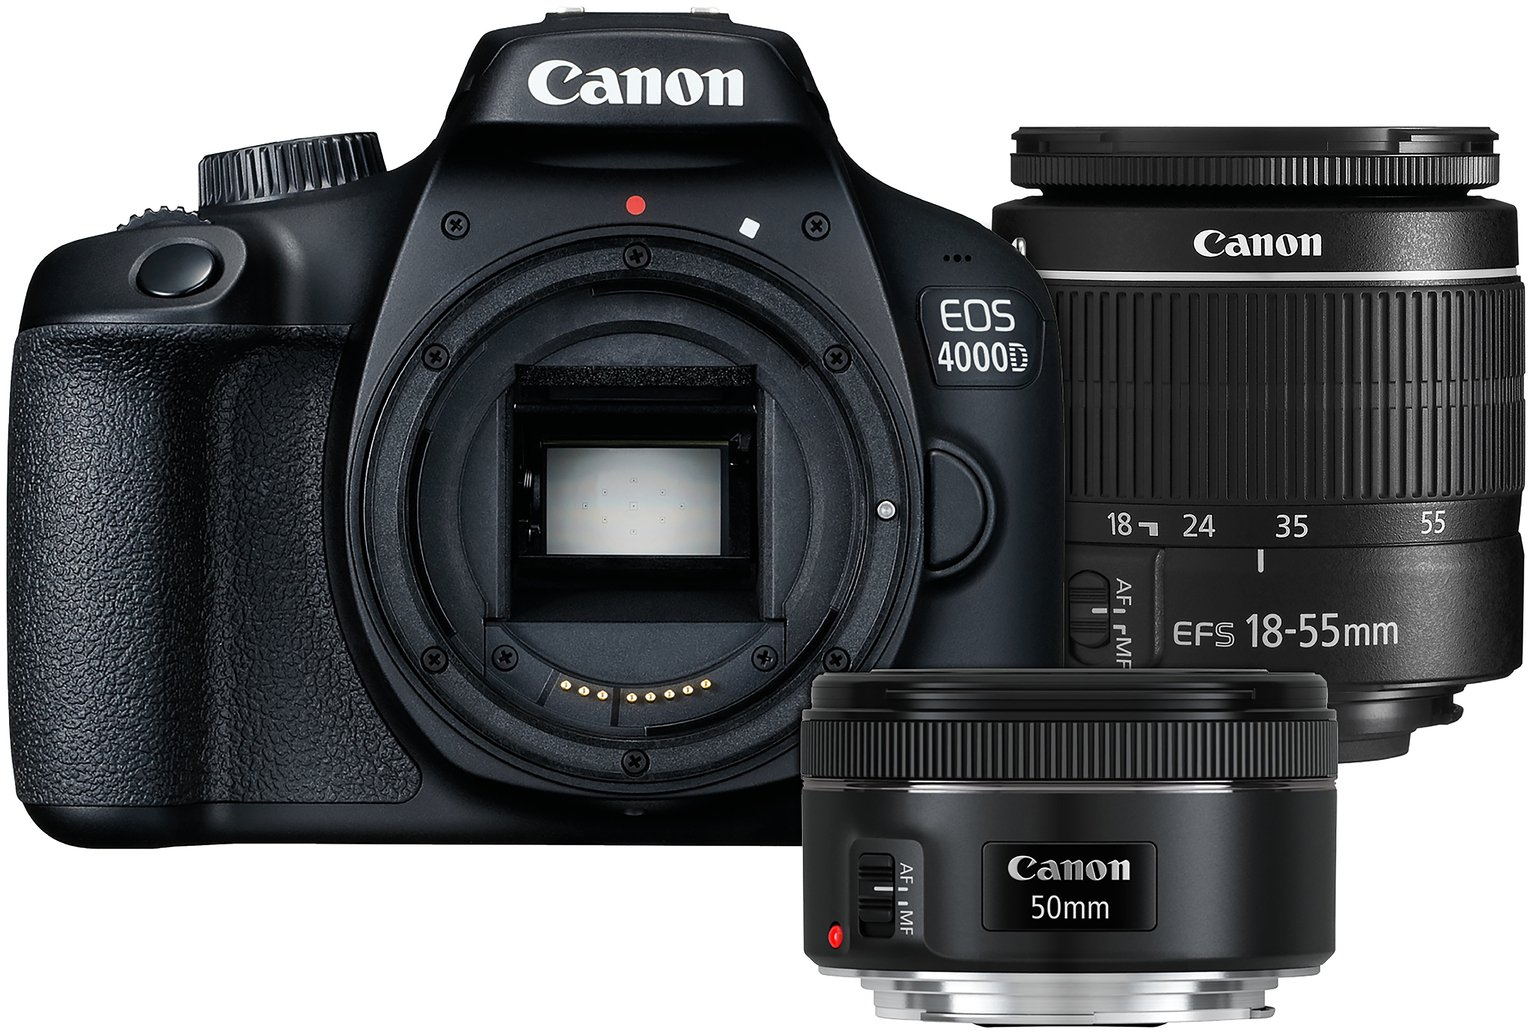 Image of Canon EOS 4000D DSLR Camera with 18-55mm & 50mm Lenses